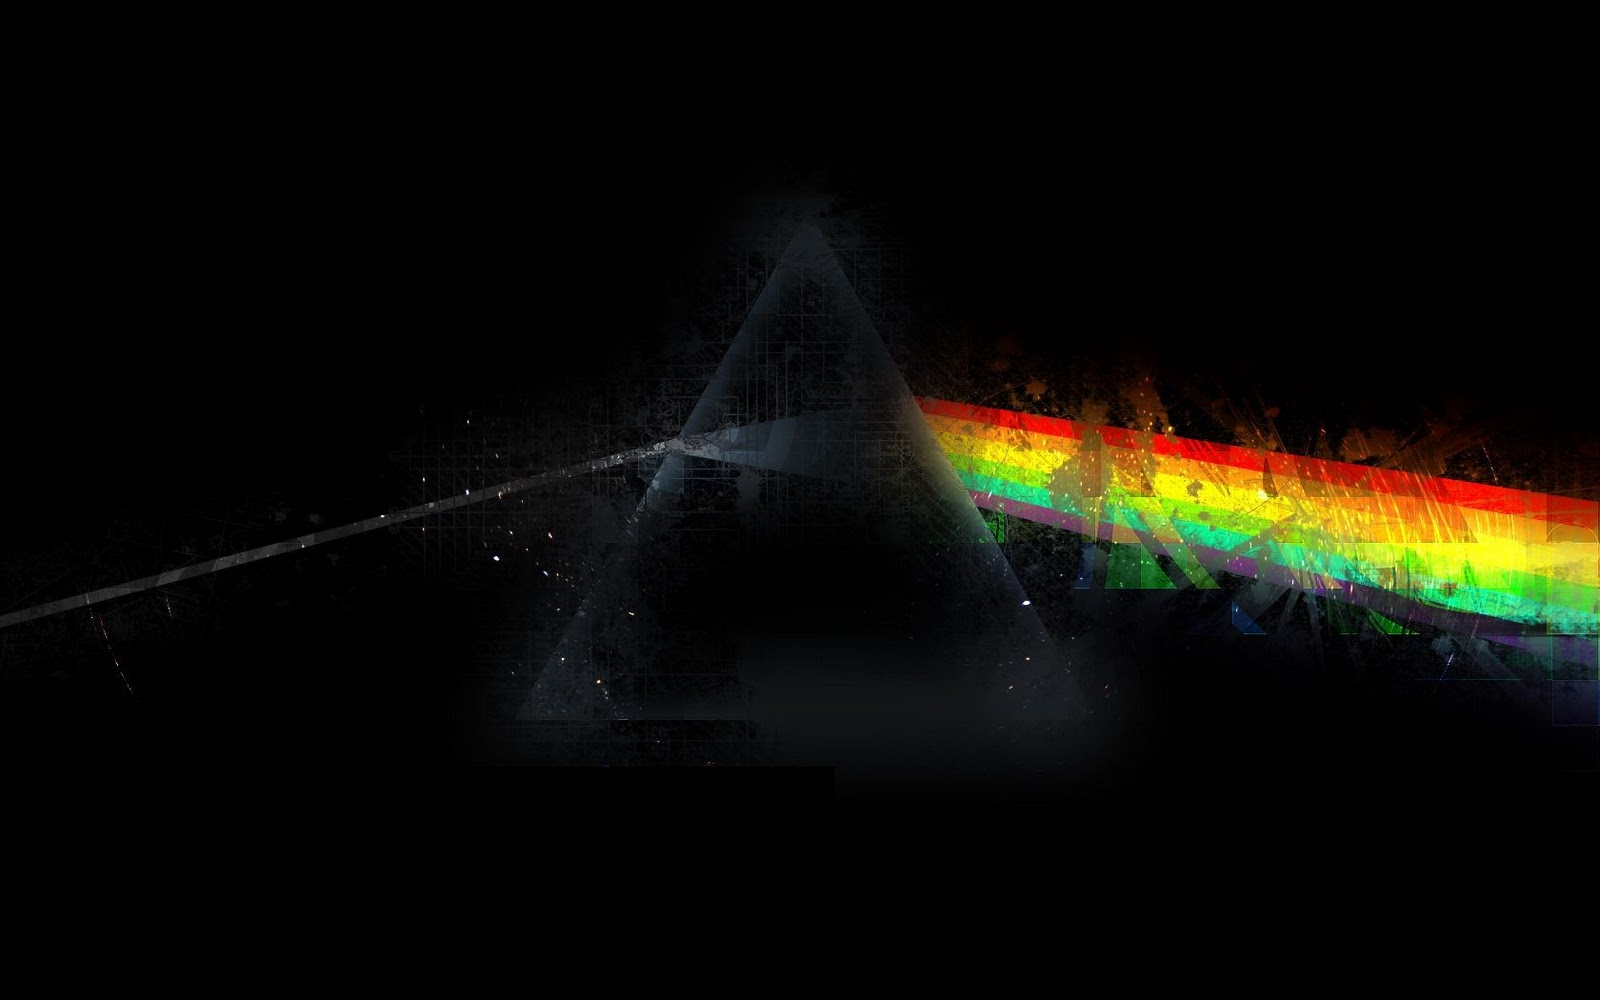 72 Dark Side Of The Moon Wallpaper On Wallpapersafari